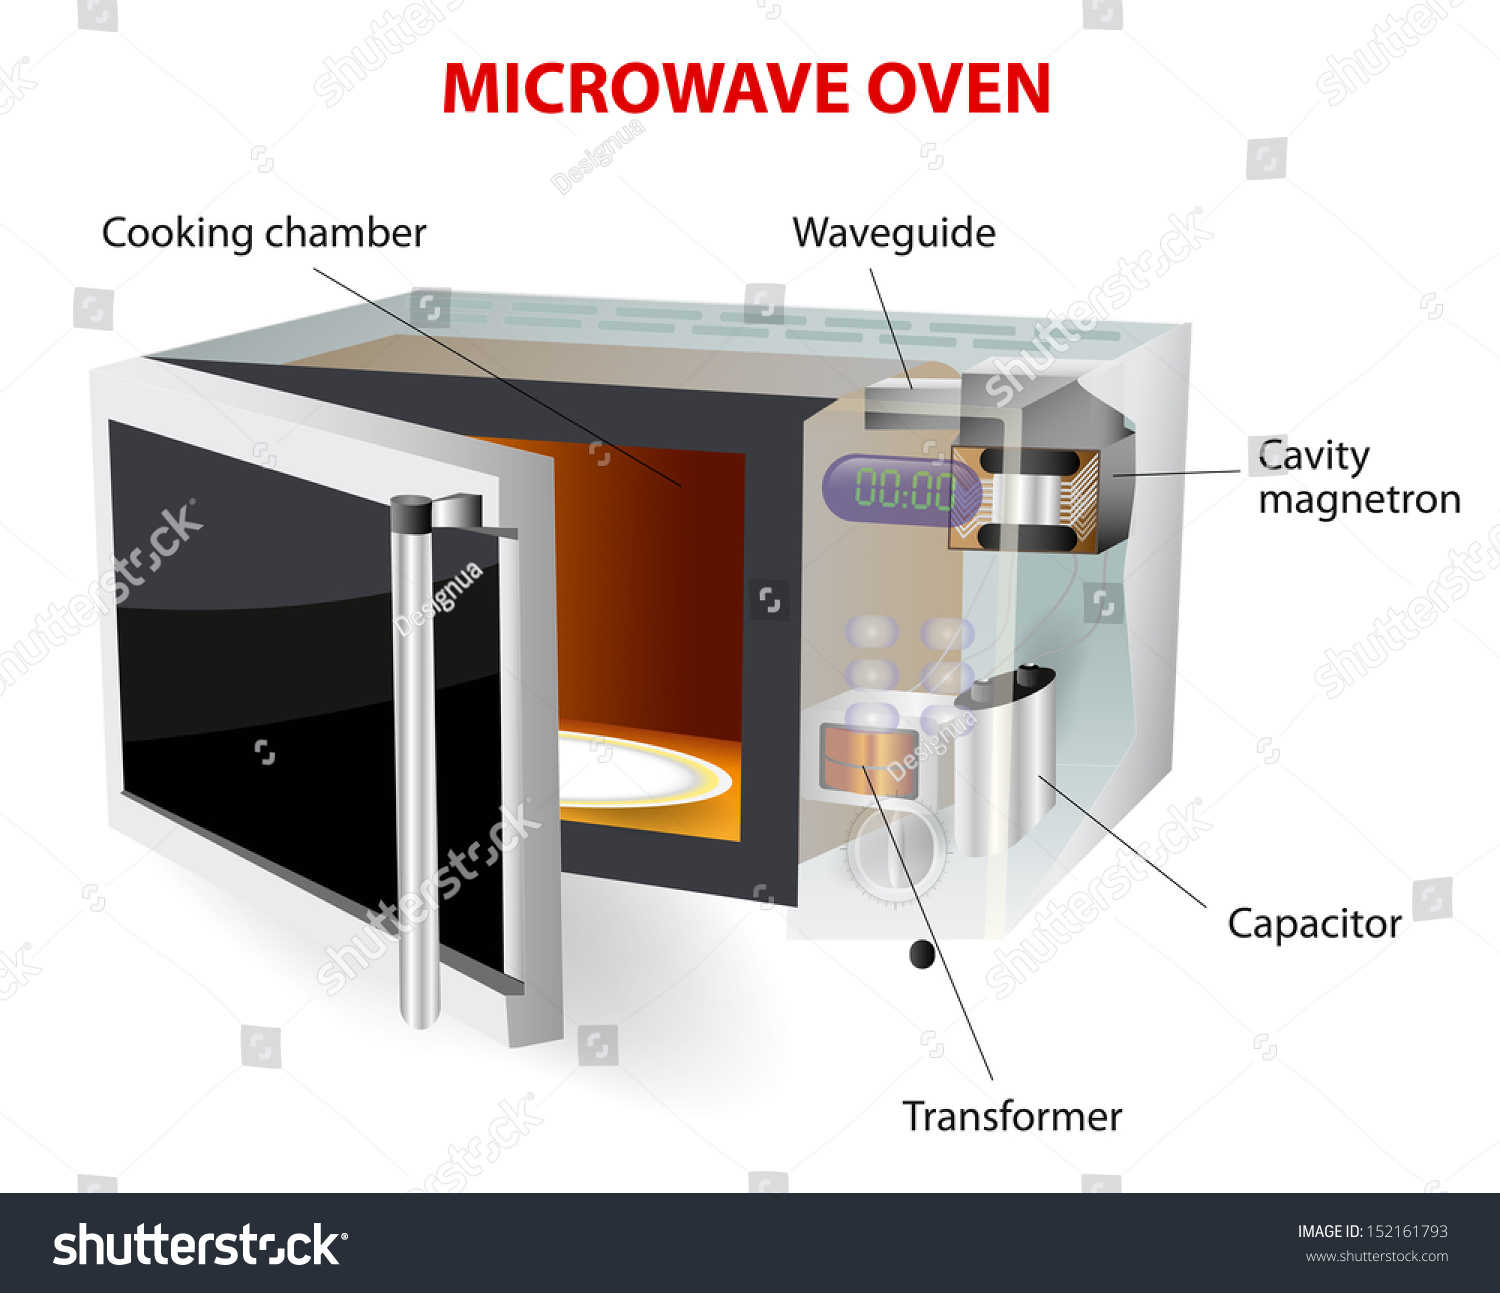 Microwave Oven  Vector Diagram  How Does This Work